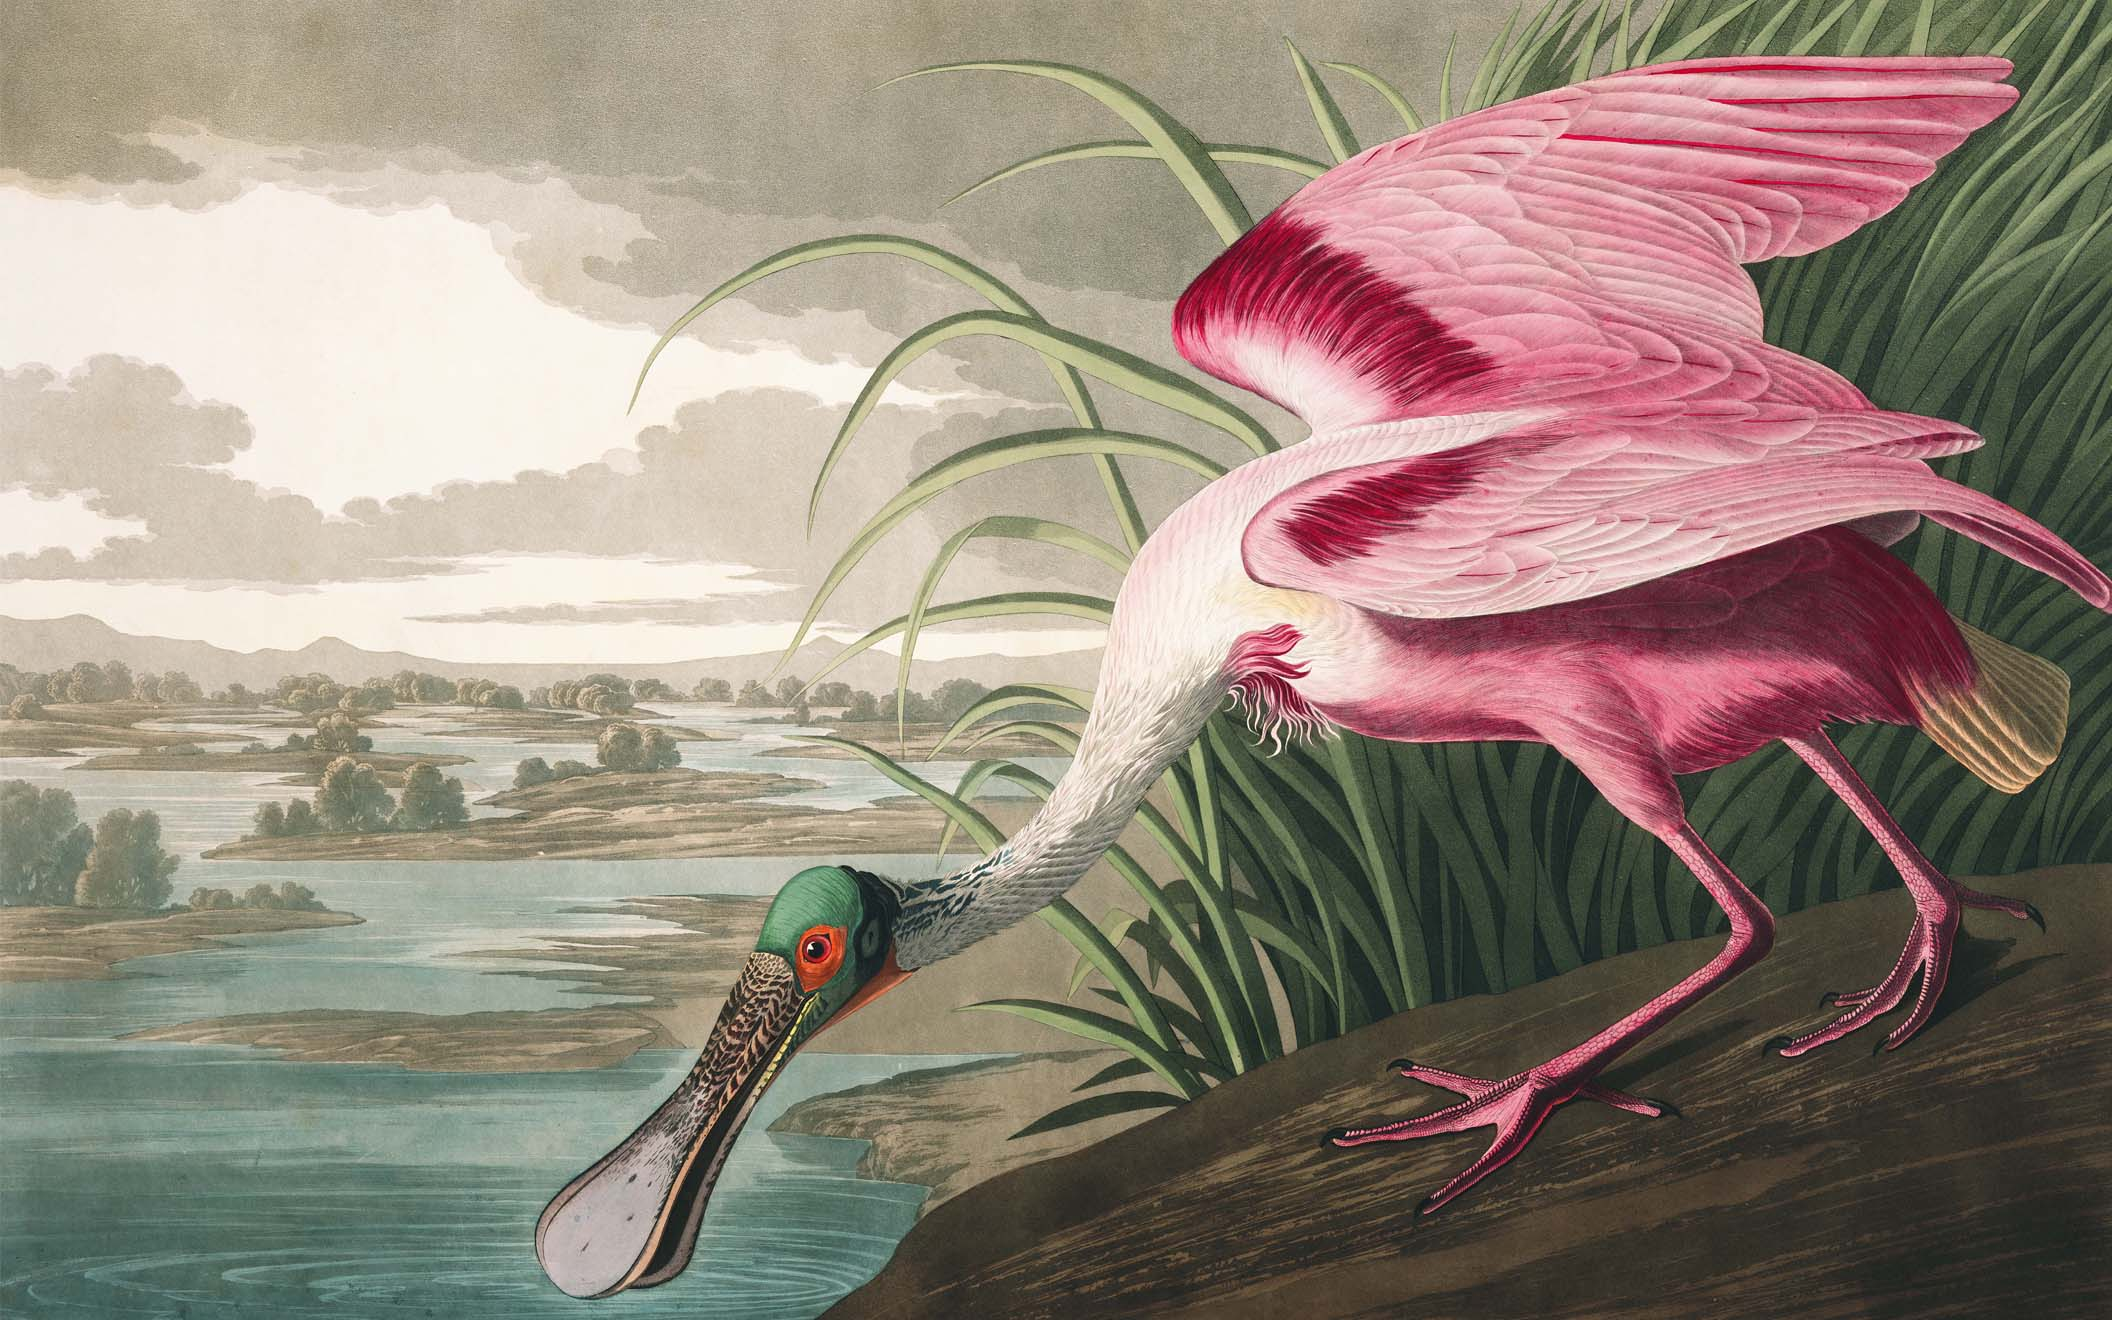 A Roseate Spoonbill.. A Bird You Can Only Imagine Unless You Live in South East America and South America.... Like a Platypus and a Flamingo Had a Love Child.